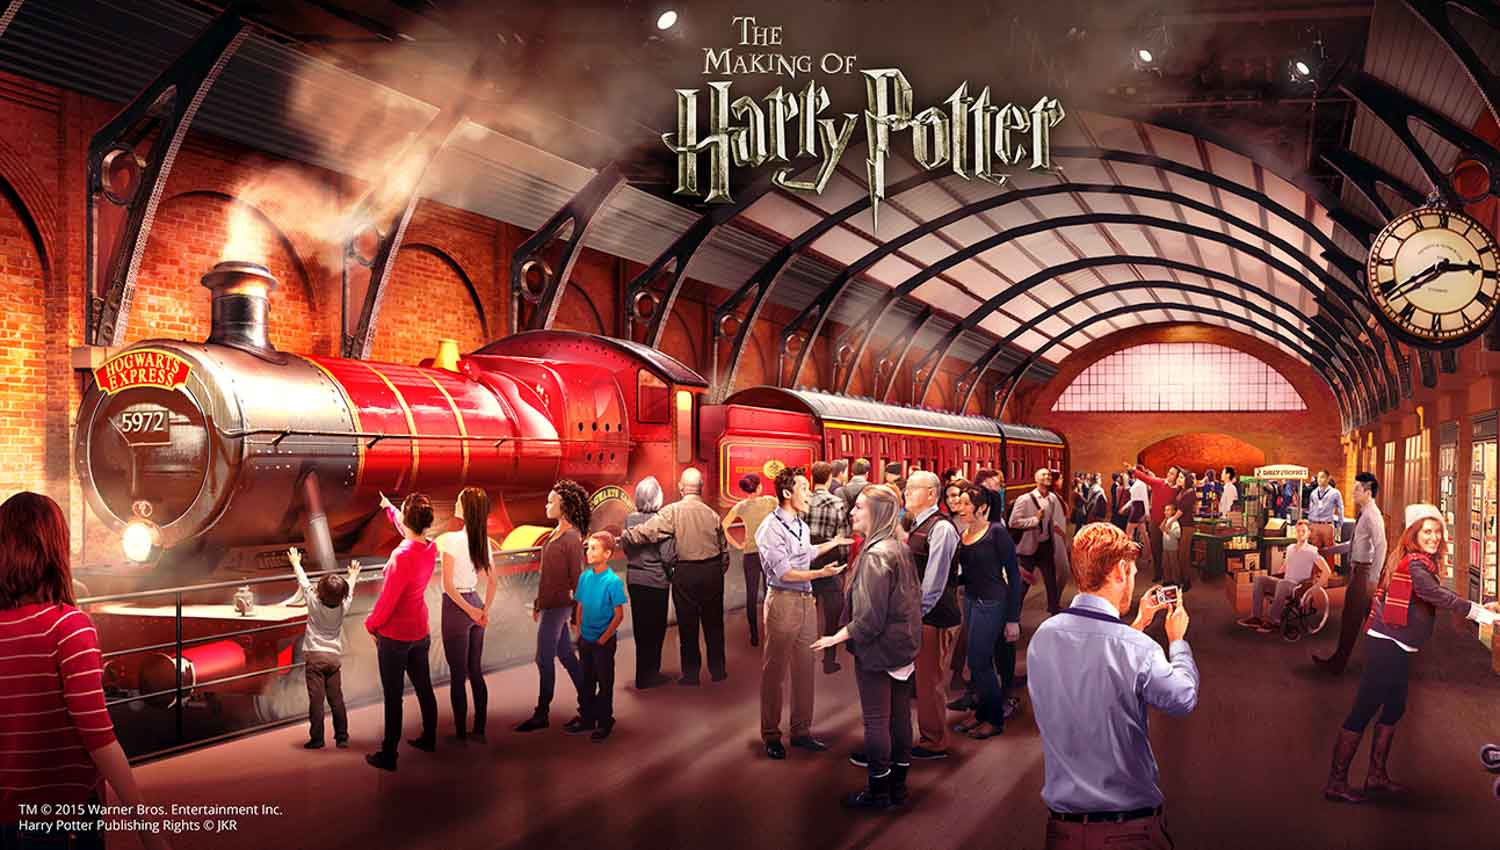 Oxford Sala Da Pranzo Harry Potter Londra Tour Harry Potter | Getyourguide